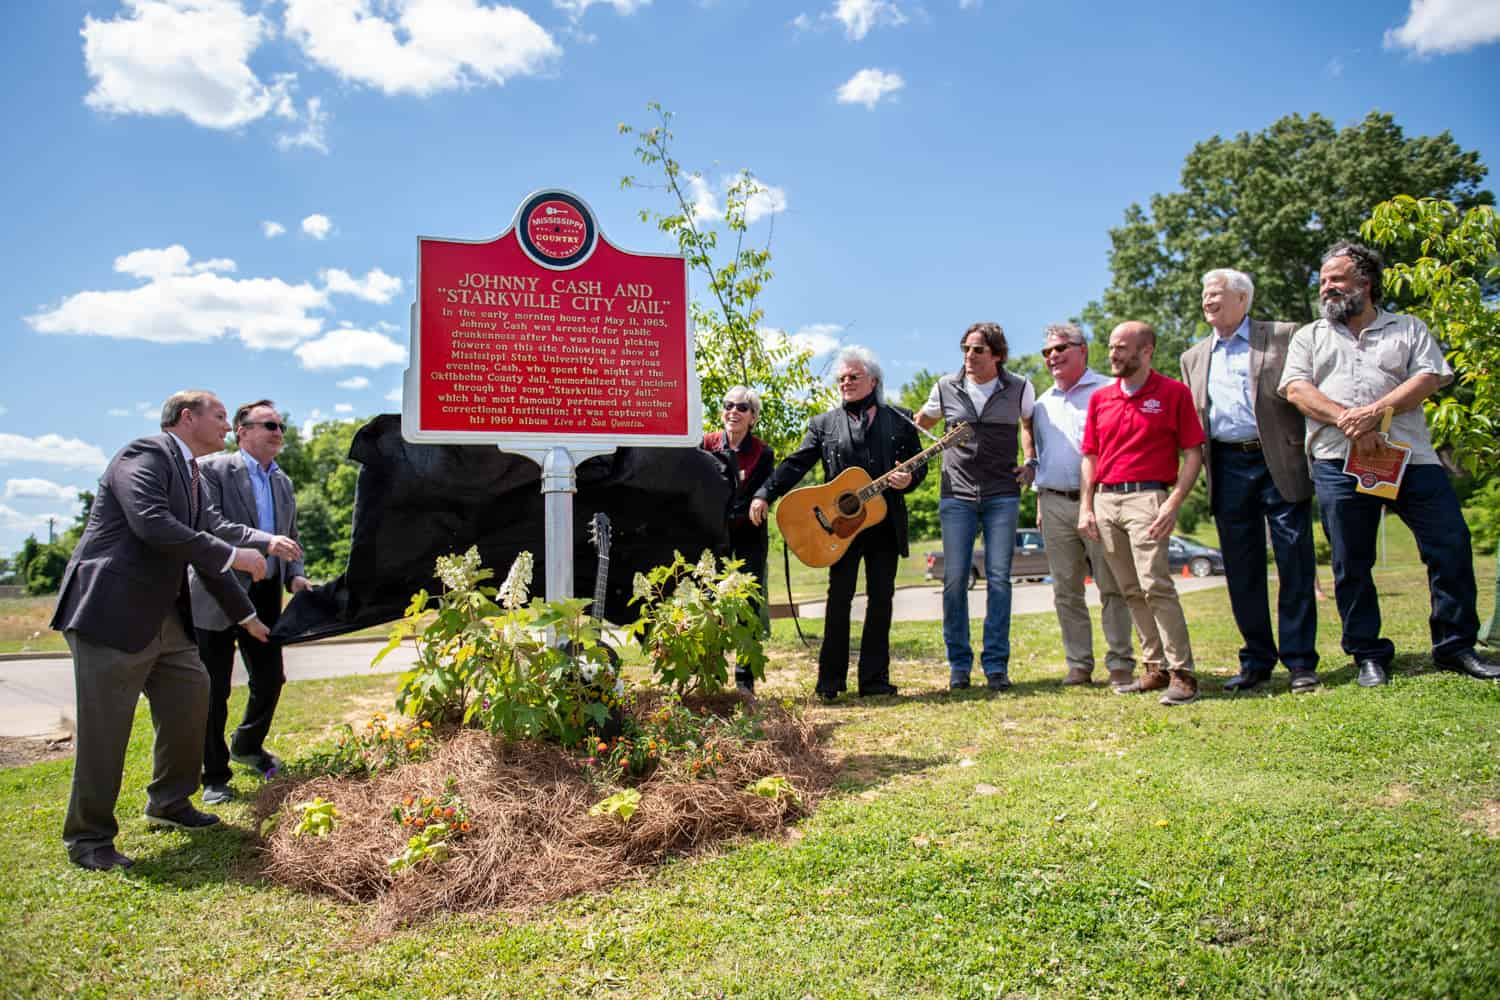 Mississippi Country Music Trail